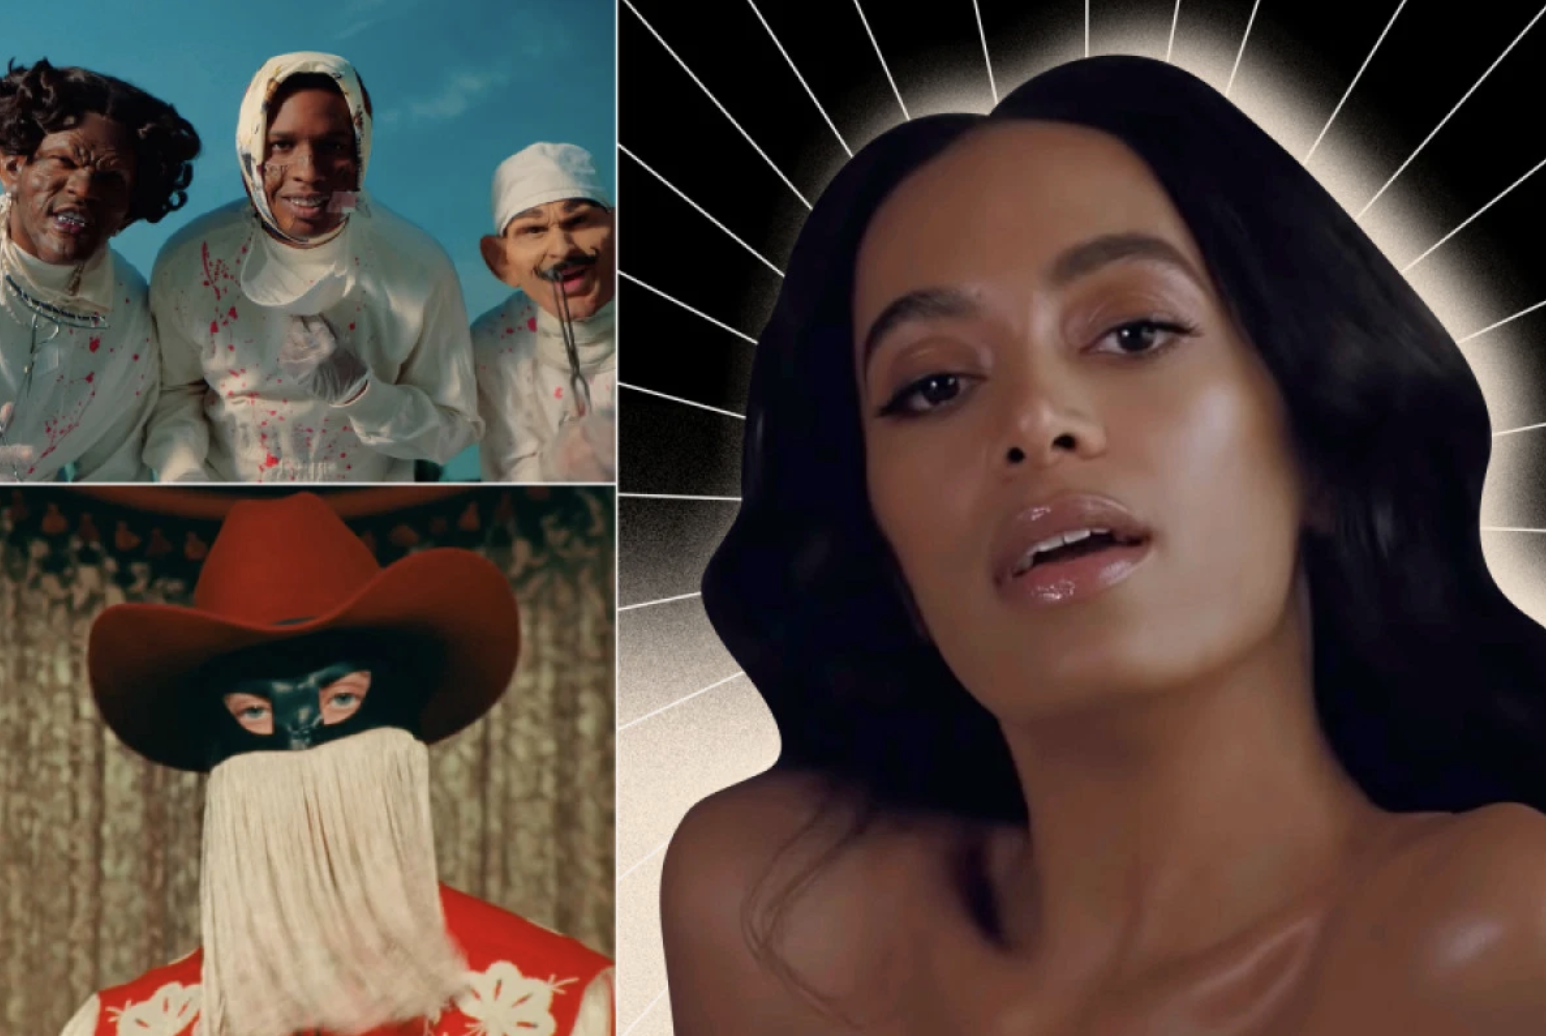 The Best Music Videos Of 2019